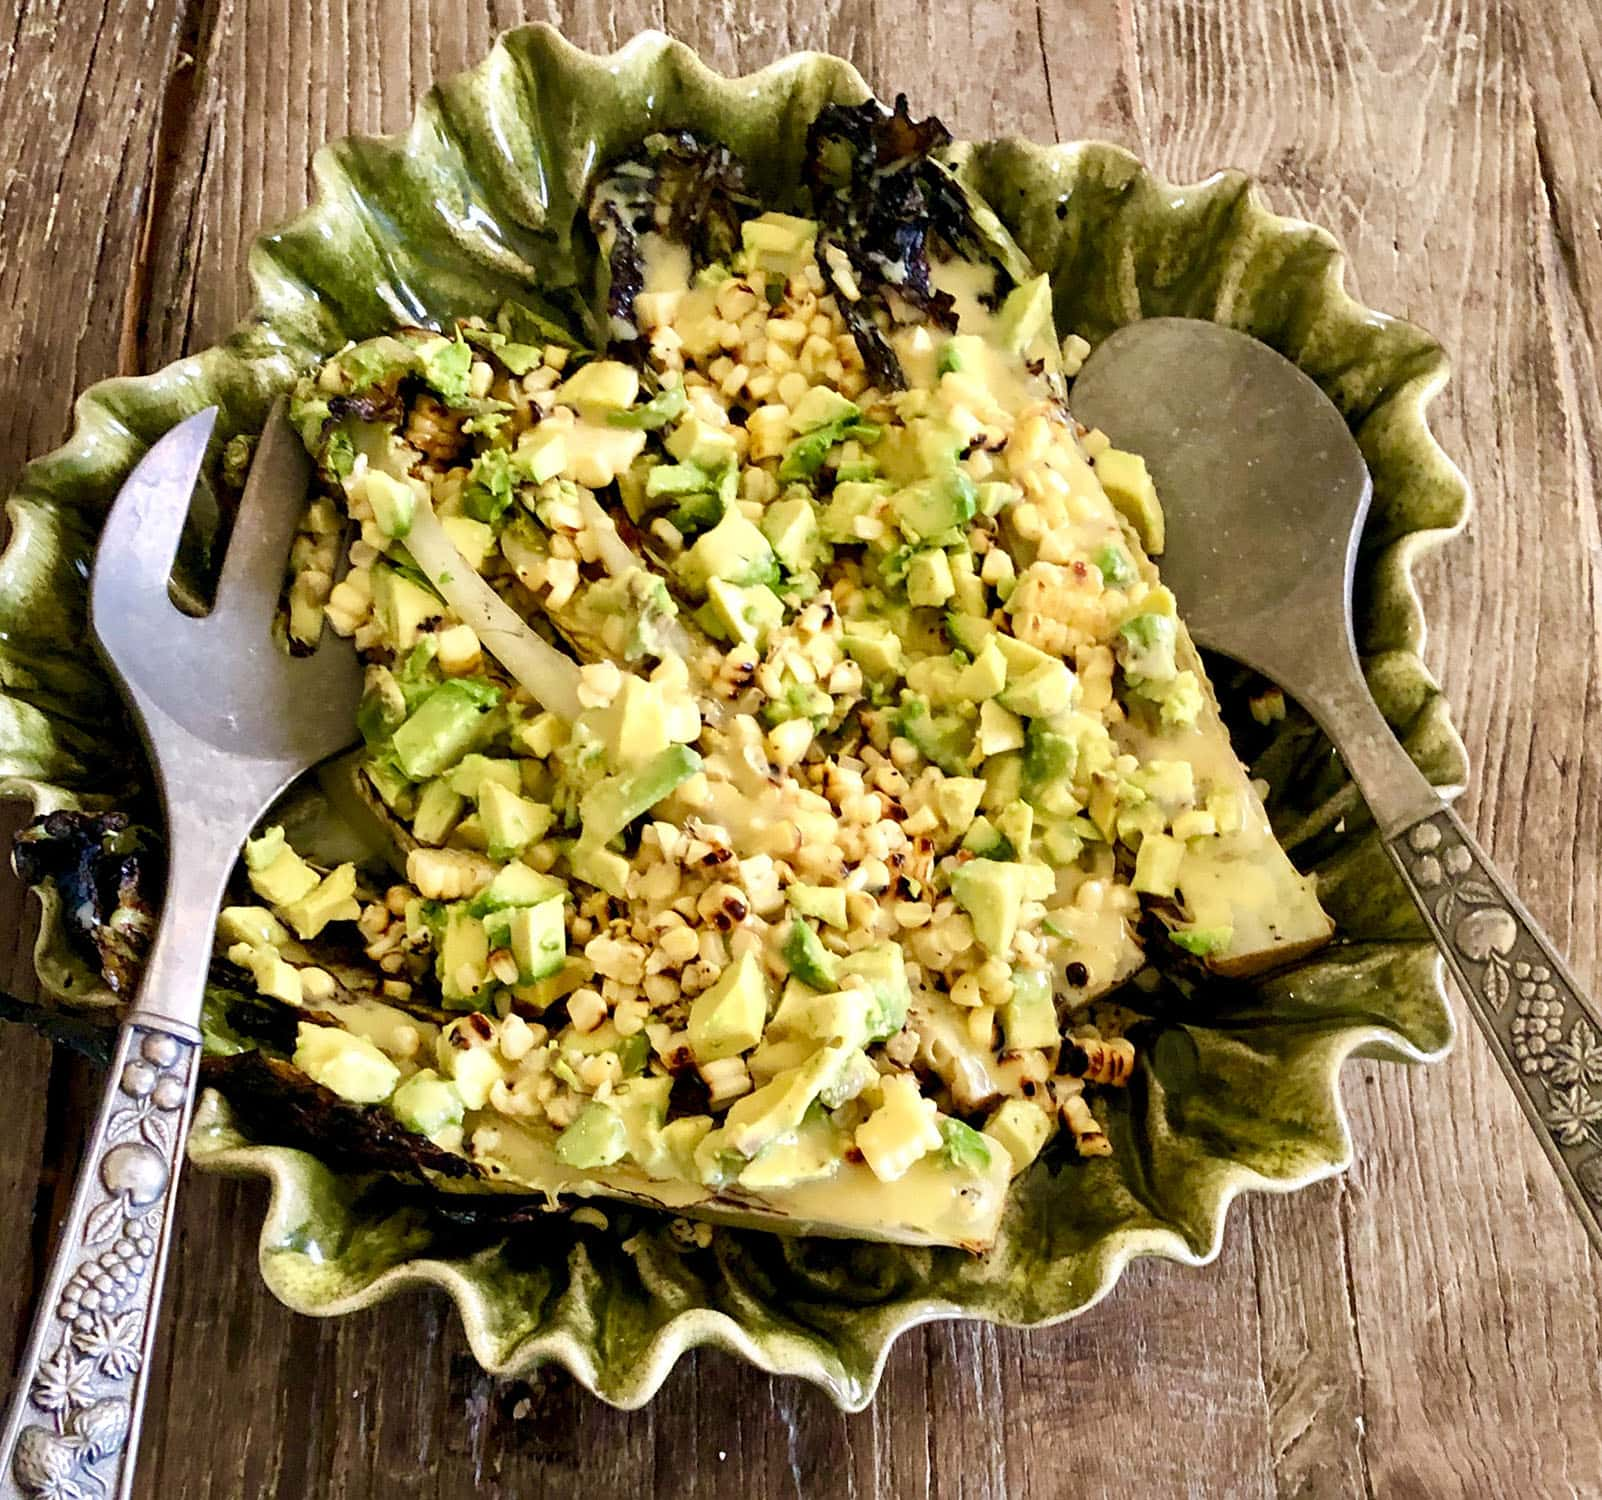 GRILLED ROMAINE WITH CORN AND AVOCADO